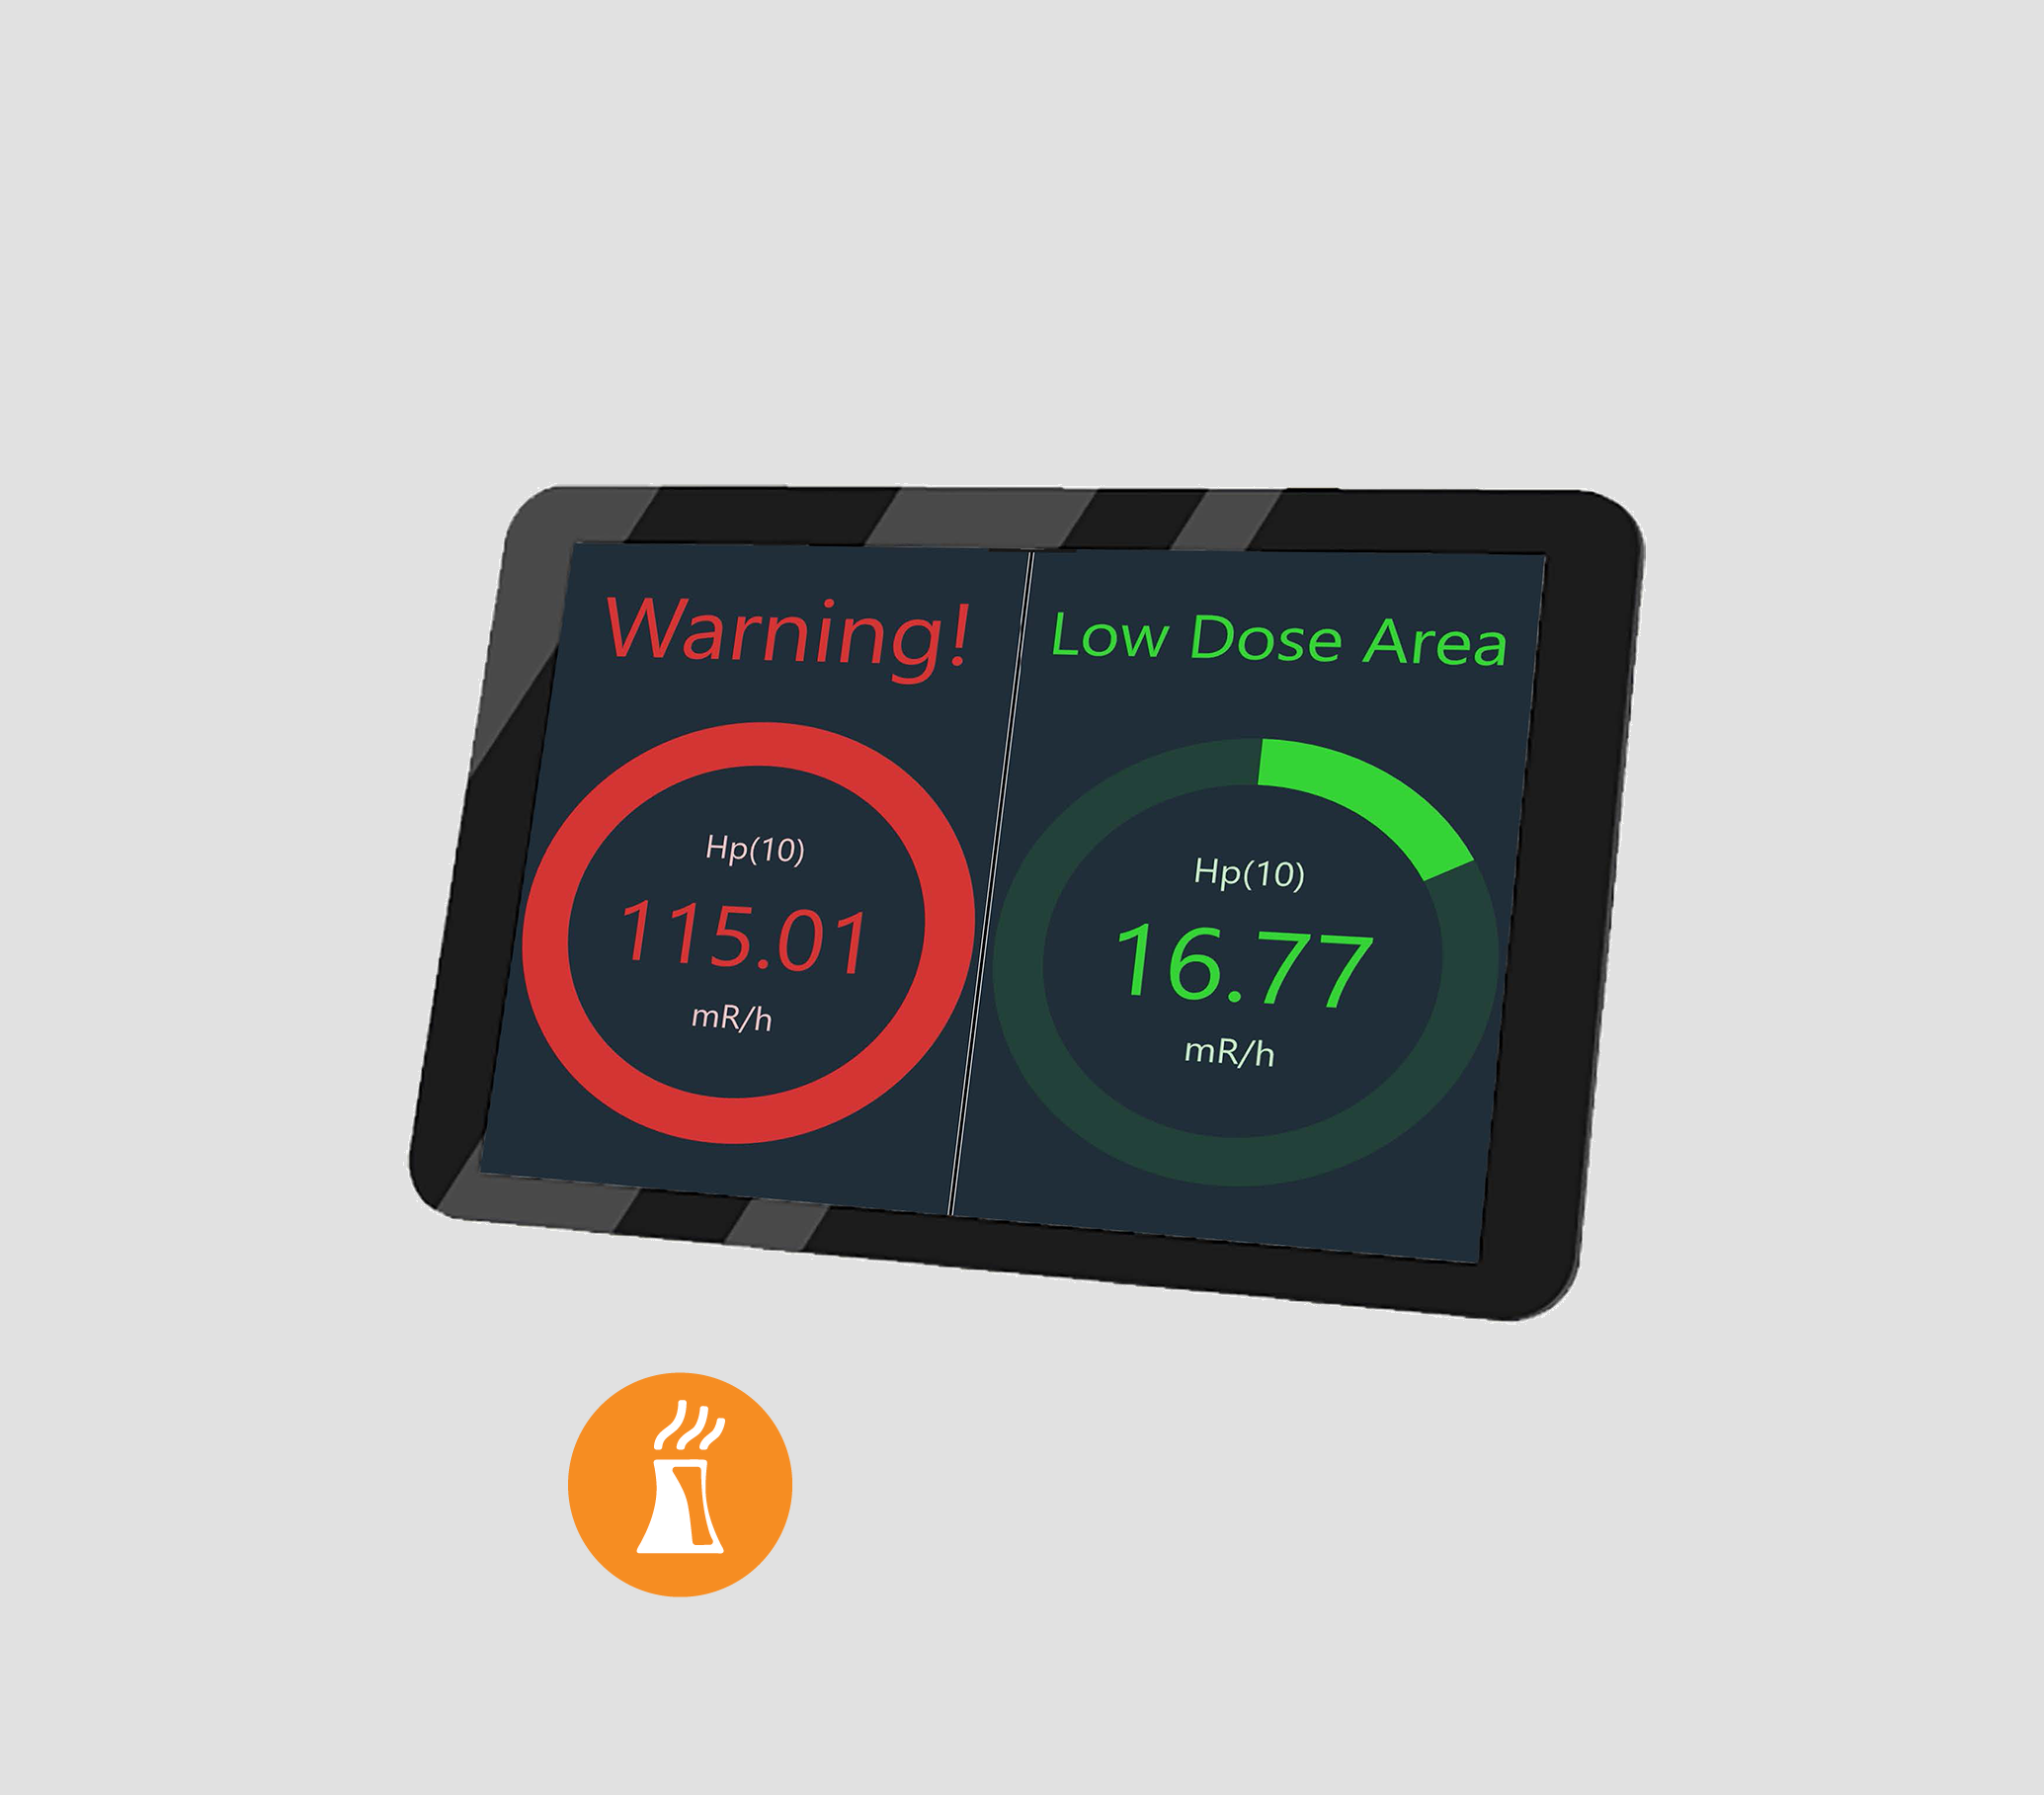 LINK2-Display RD-7 - The Link2-Display RD-7 is a standalone Radiation Display (RD) able to display instrument dose readings from connected and wireless dosimeters and area monitors…